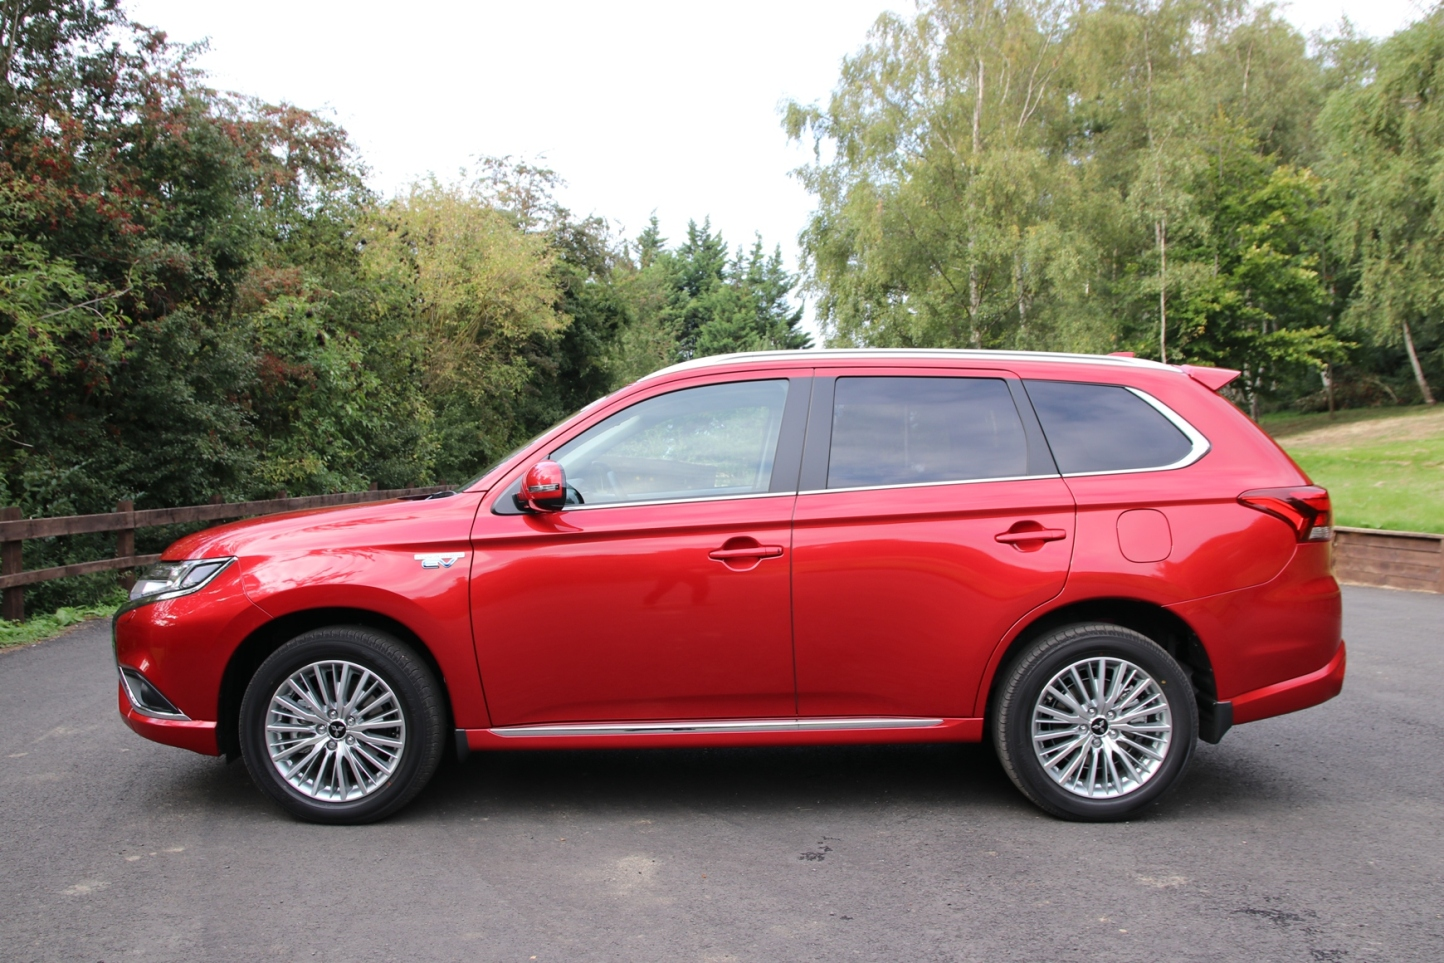 2019 Mitsubishi Outlander PHEV – First Impressions – Wheels Alive